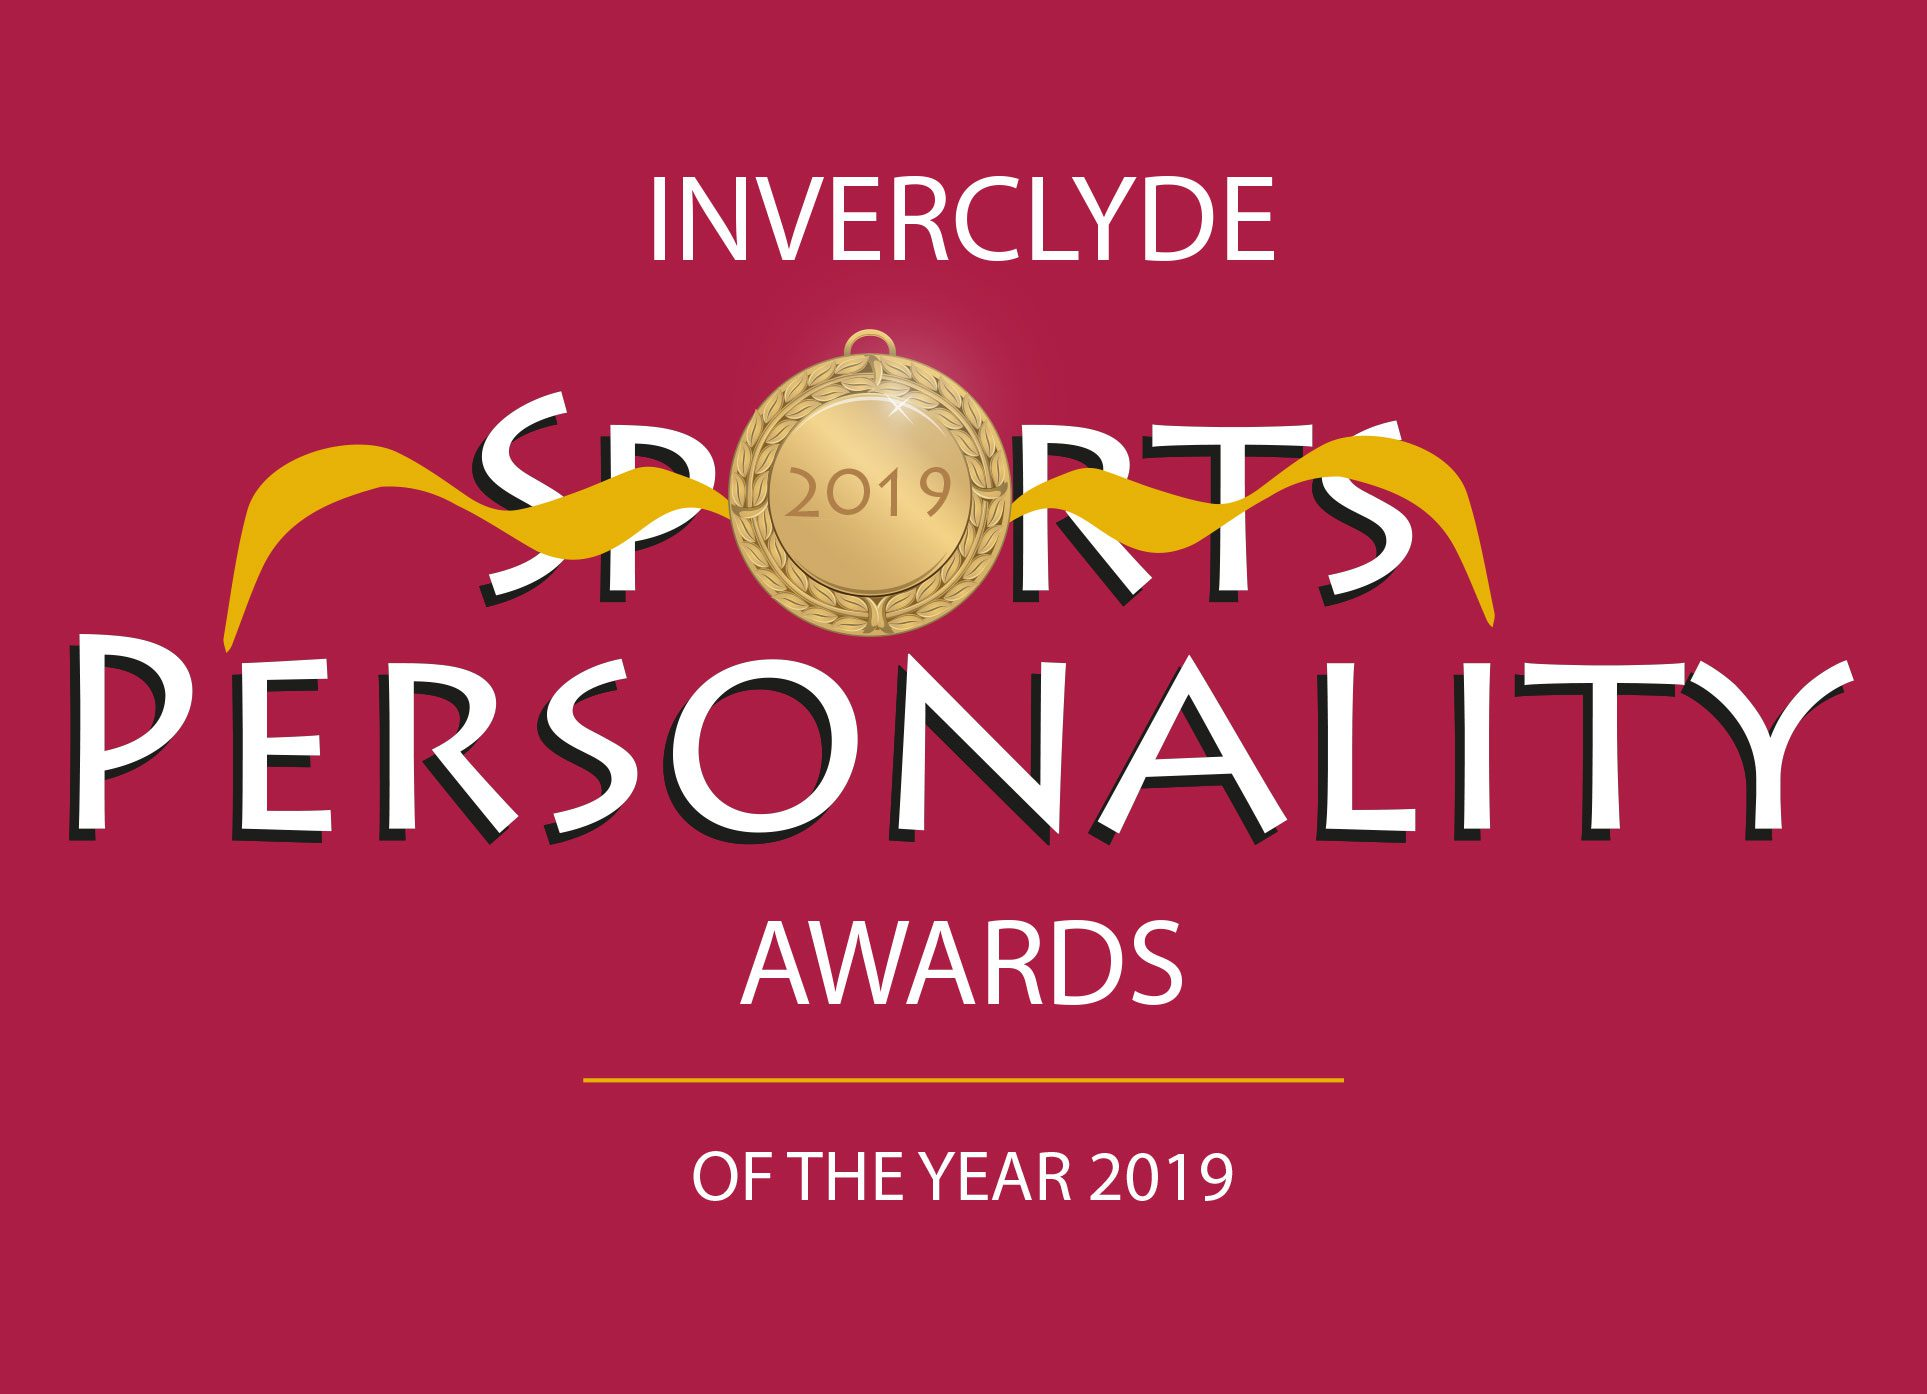 2019 Inverclyde Sports Personality Awards trophies presented at last in person!